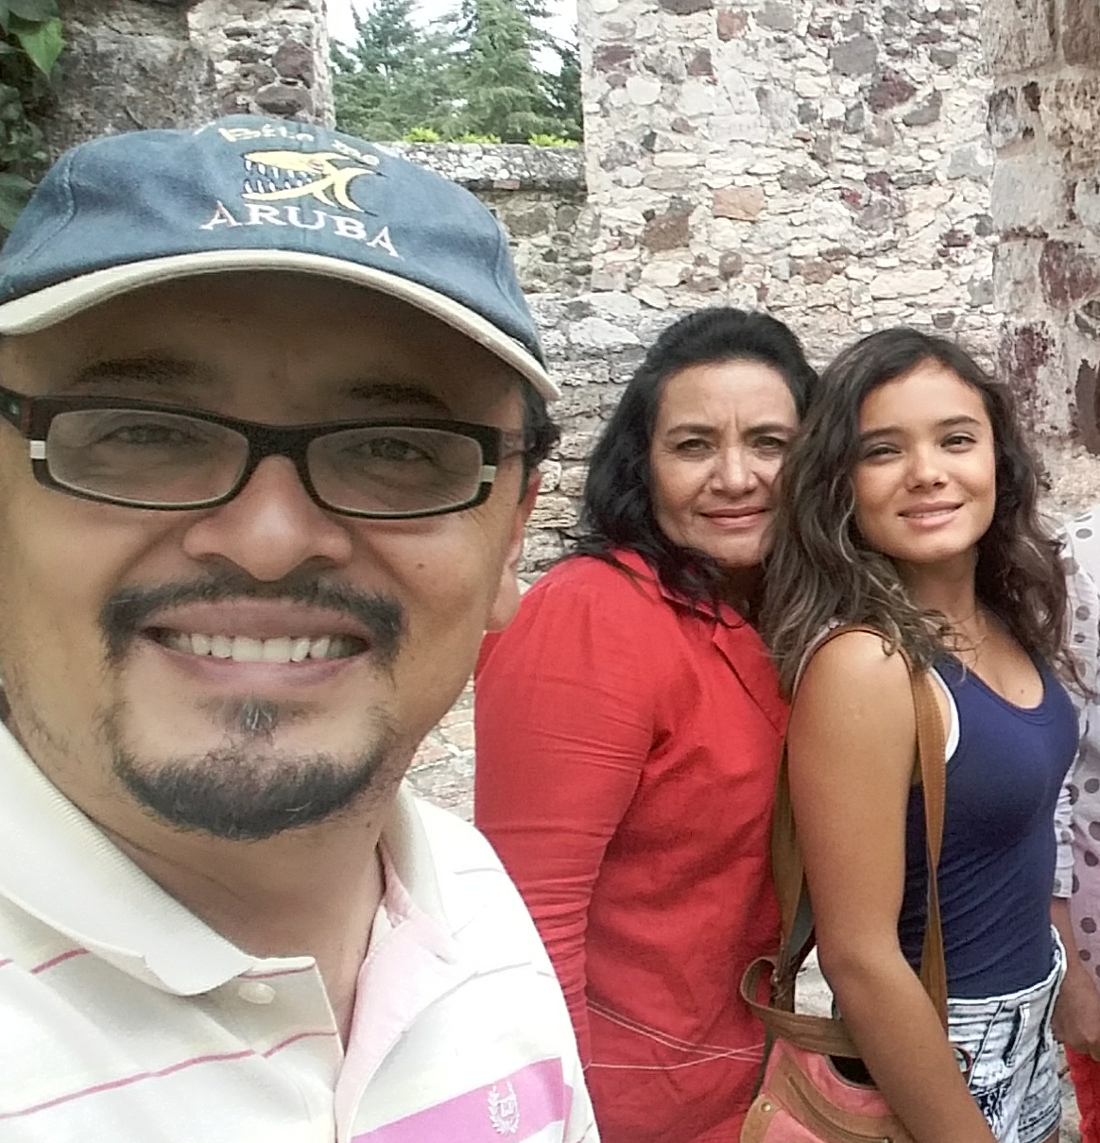 - César with wife and daughter